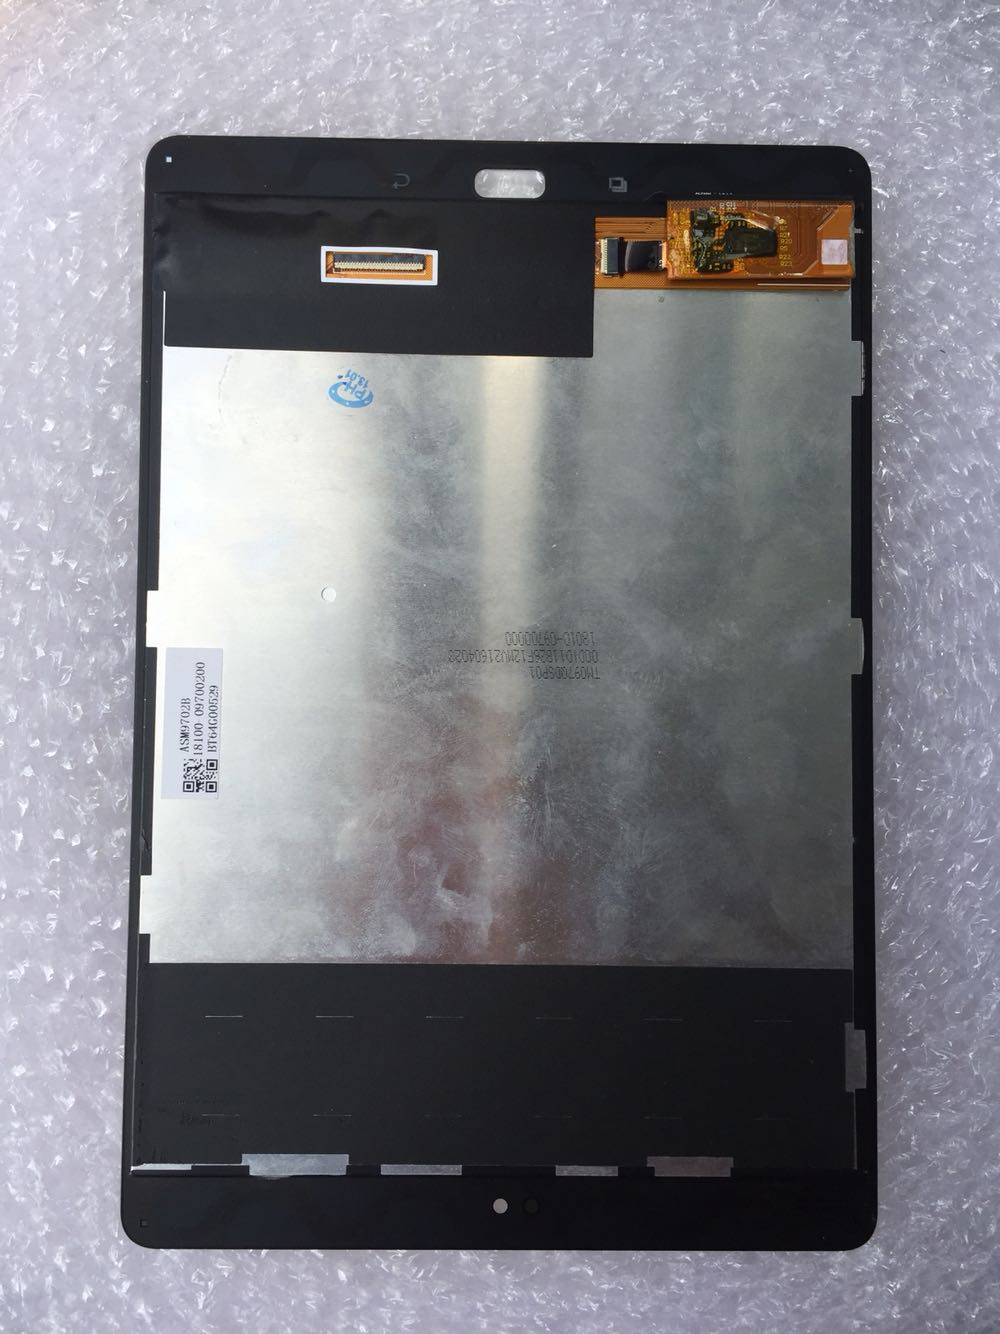 Original For ASUS ZenPad 3S 10 Z500M P027 Z500KL P001 LCD Display Matrix Touch Screen Digitizer Sensor Tablet PC Parts Assembly new 10 1 inch for asus zenpad 10 z300m lcd display touch screen digitizer assembly replacement parts yellow connector